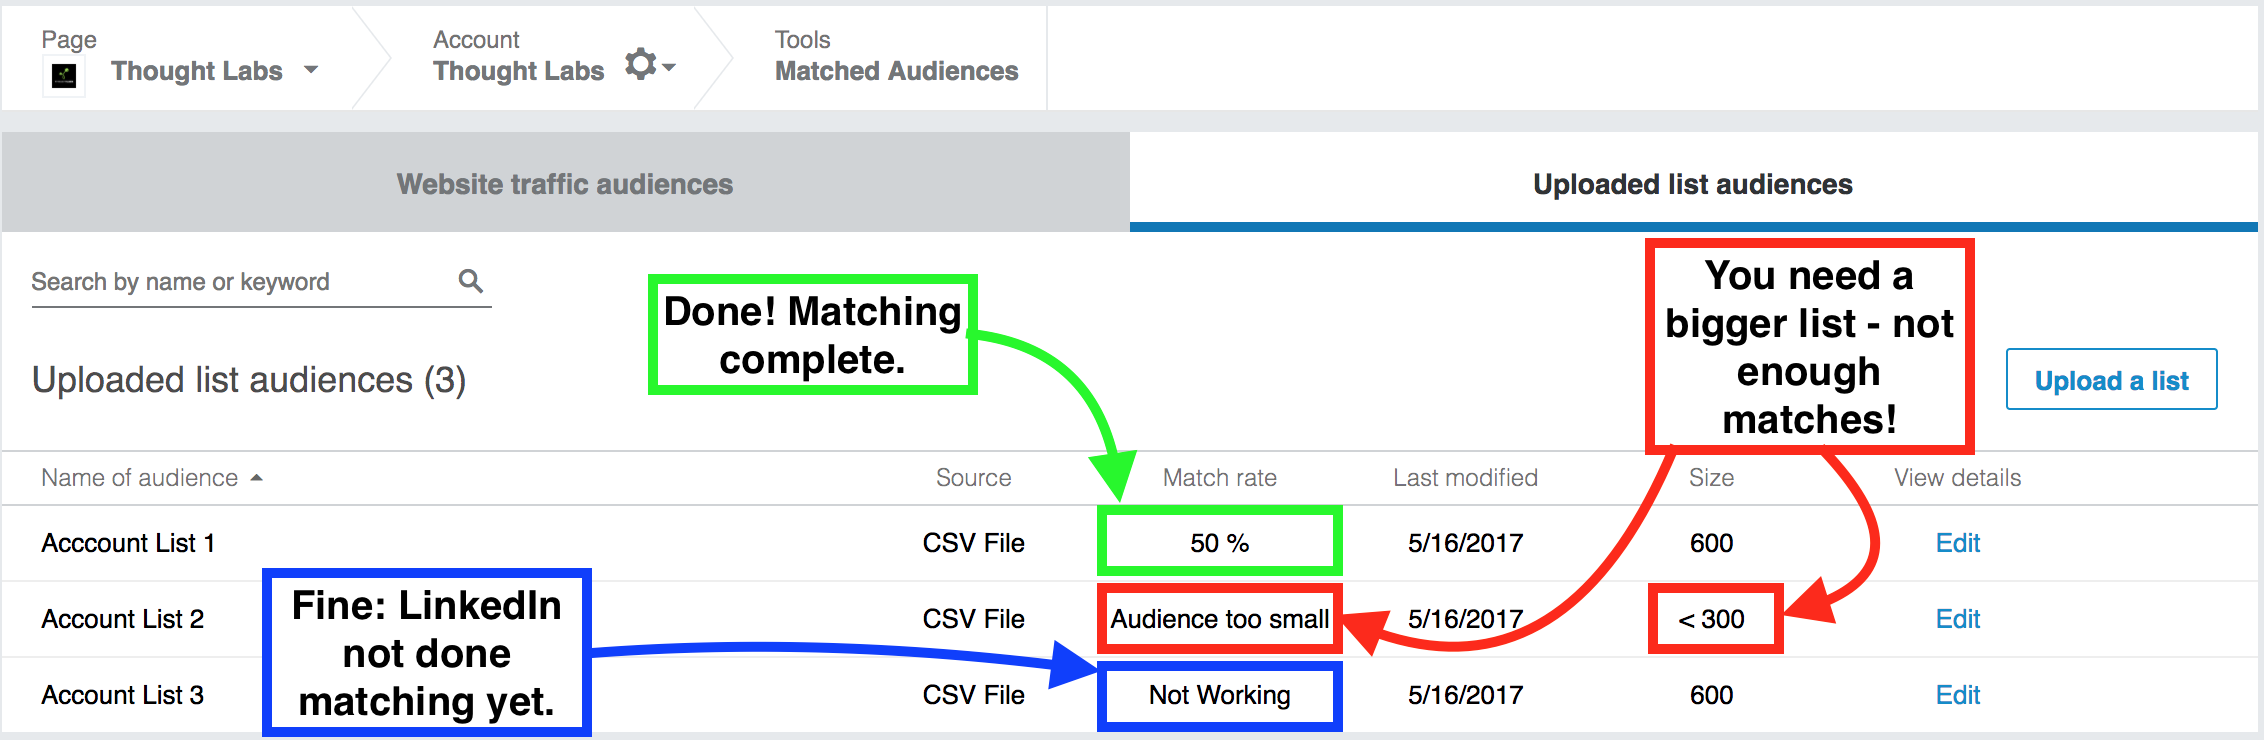 LinkedIn matched audience results list